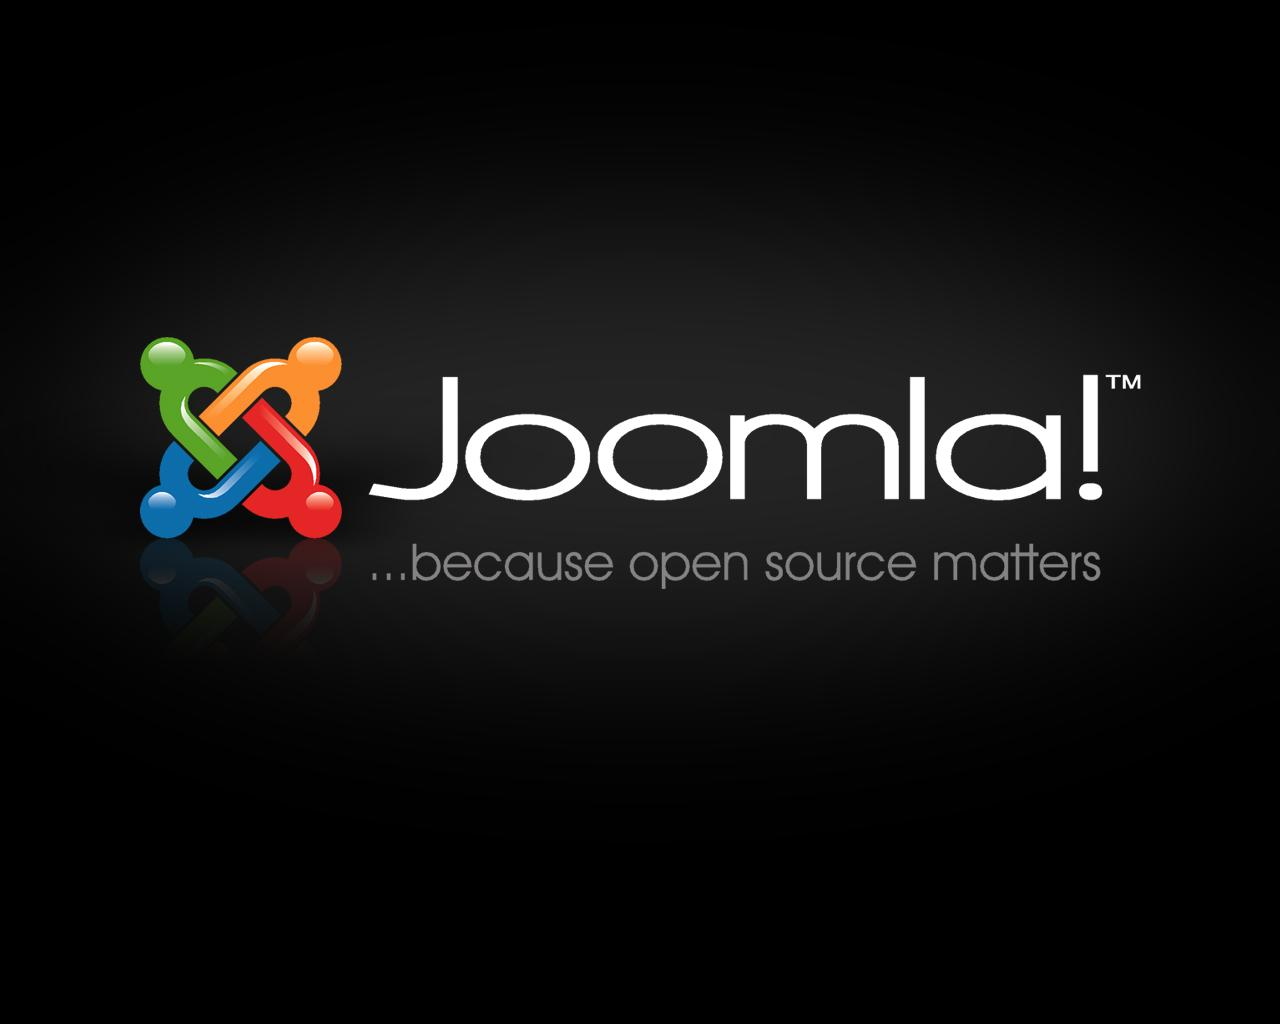 3 Websites to Help You Find Joomla! Development Jobs